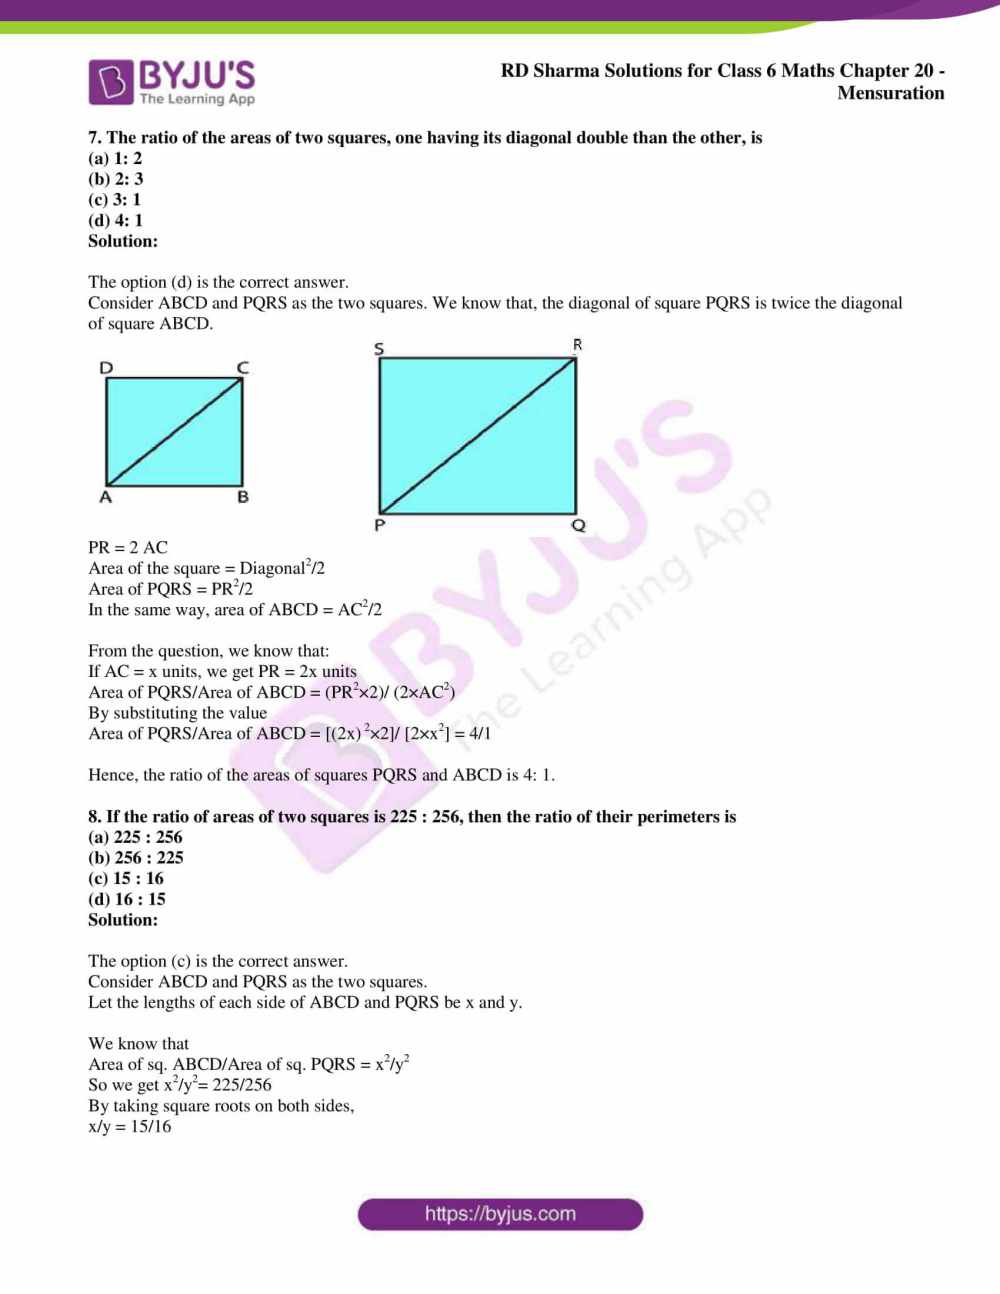 medium resolution of RD Sharma Solutions for Class 6 Chapter 20 Mensuration access PDF